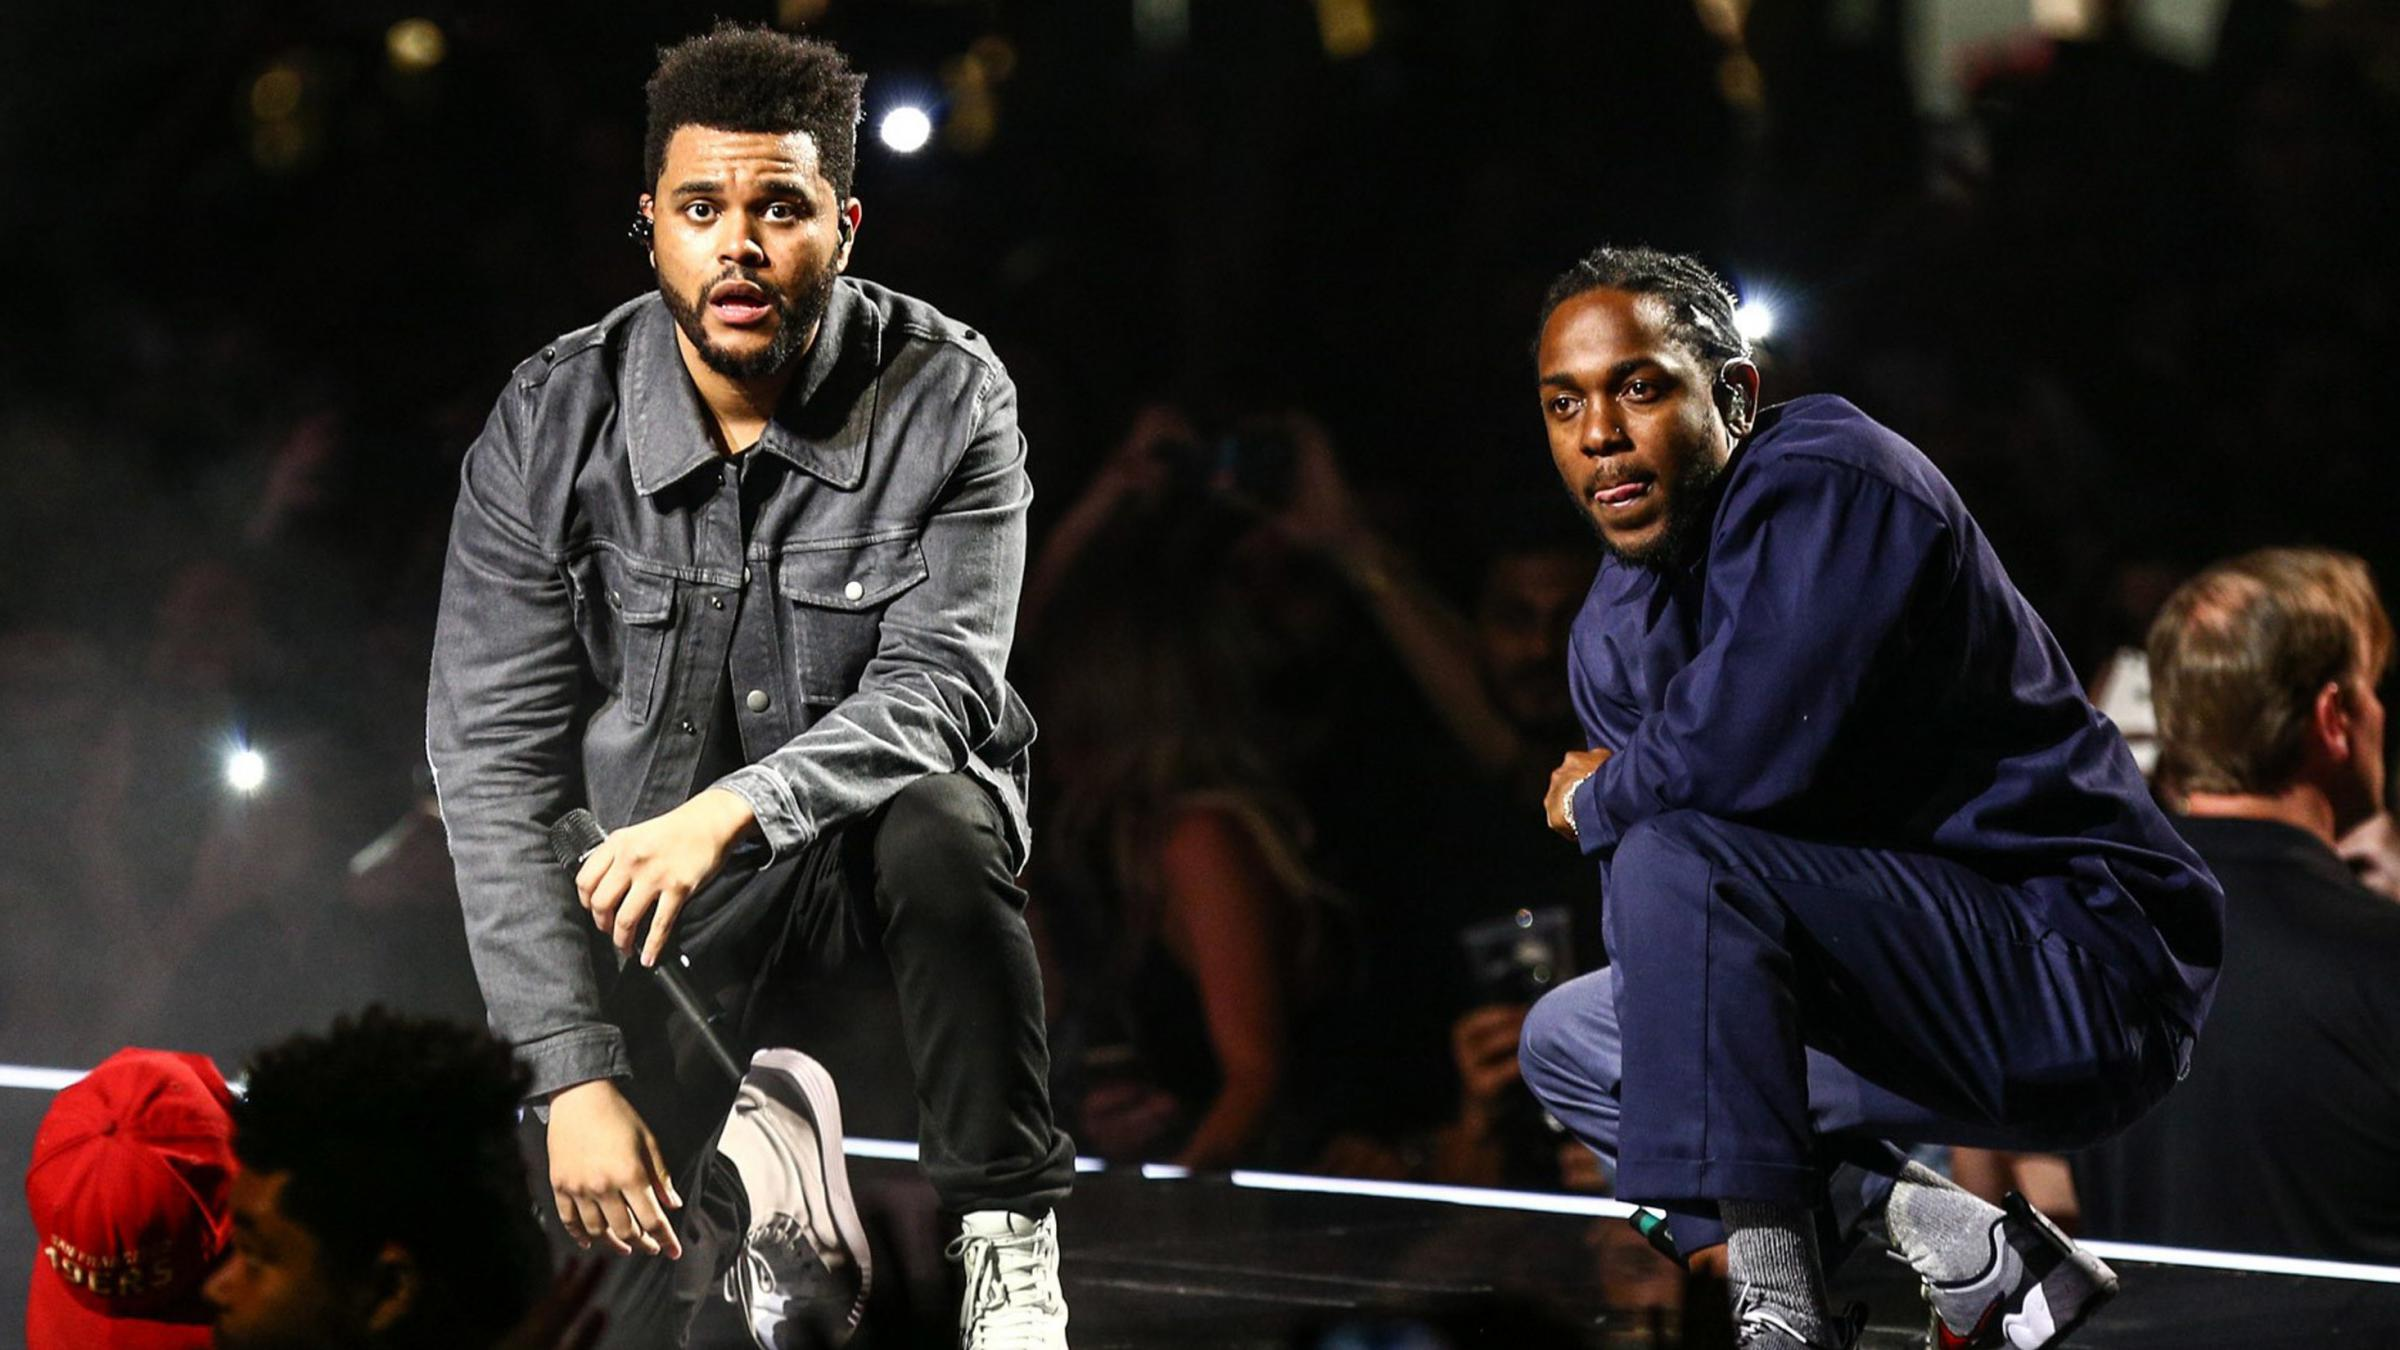 The Weeknd, Kendrick Lamar release 'Pray For Me'